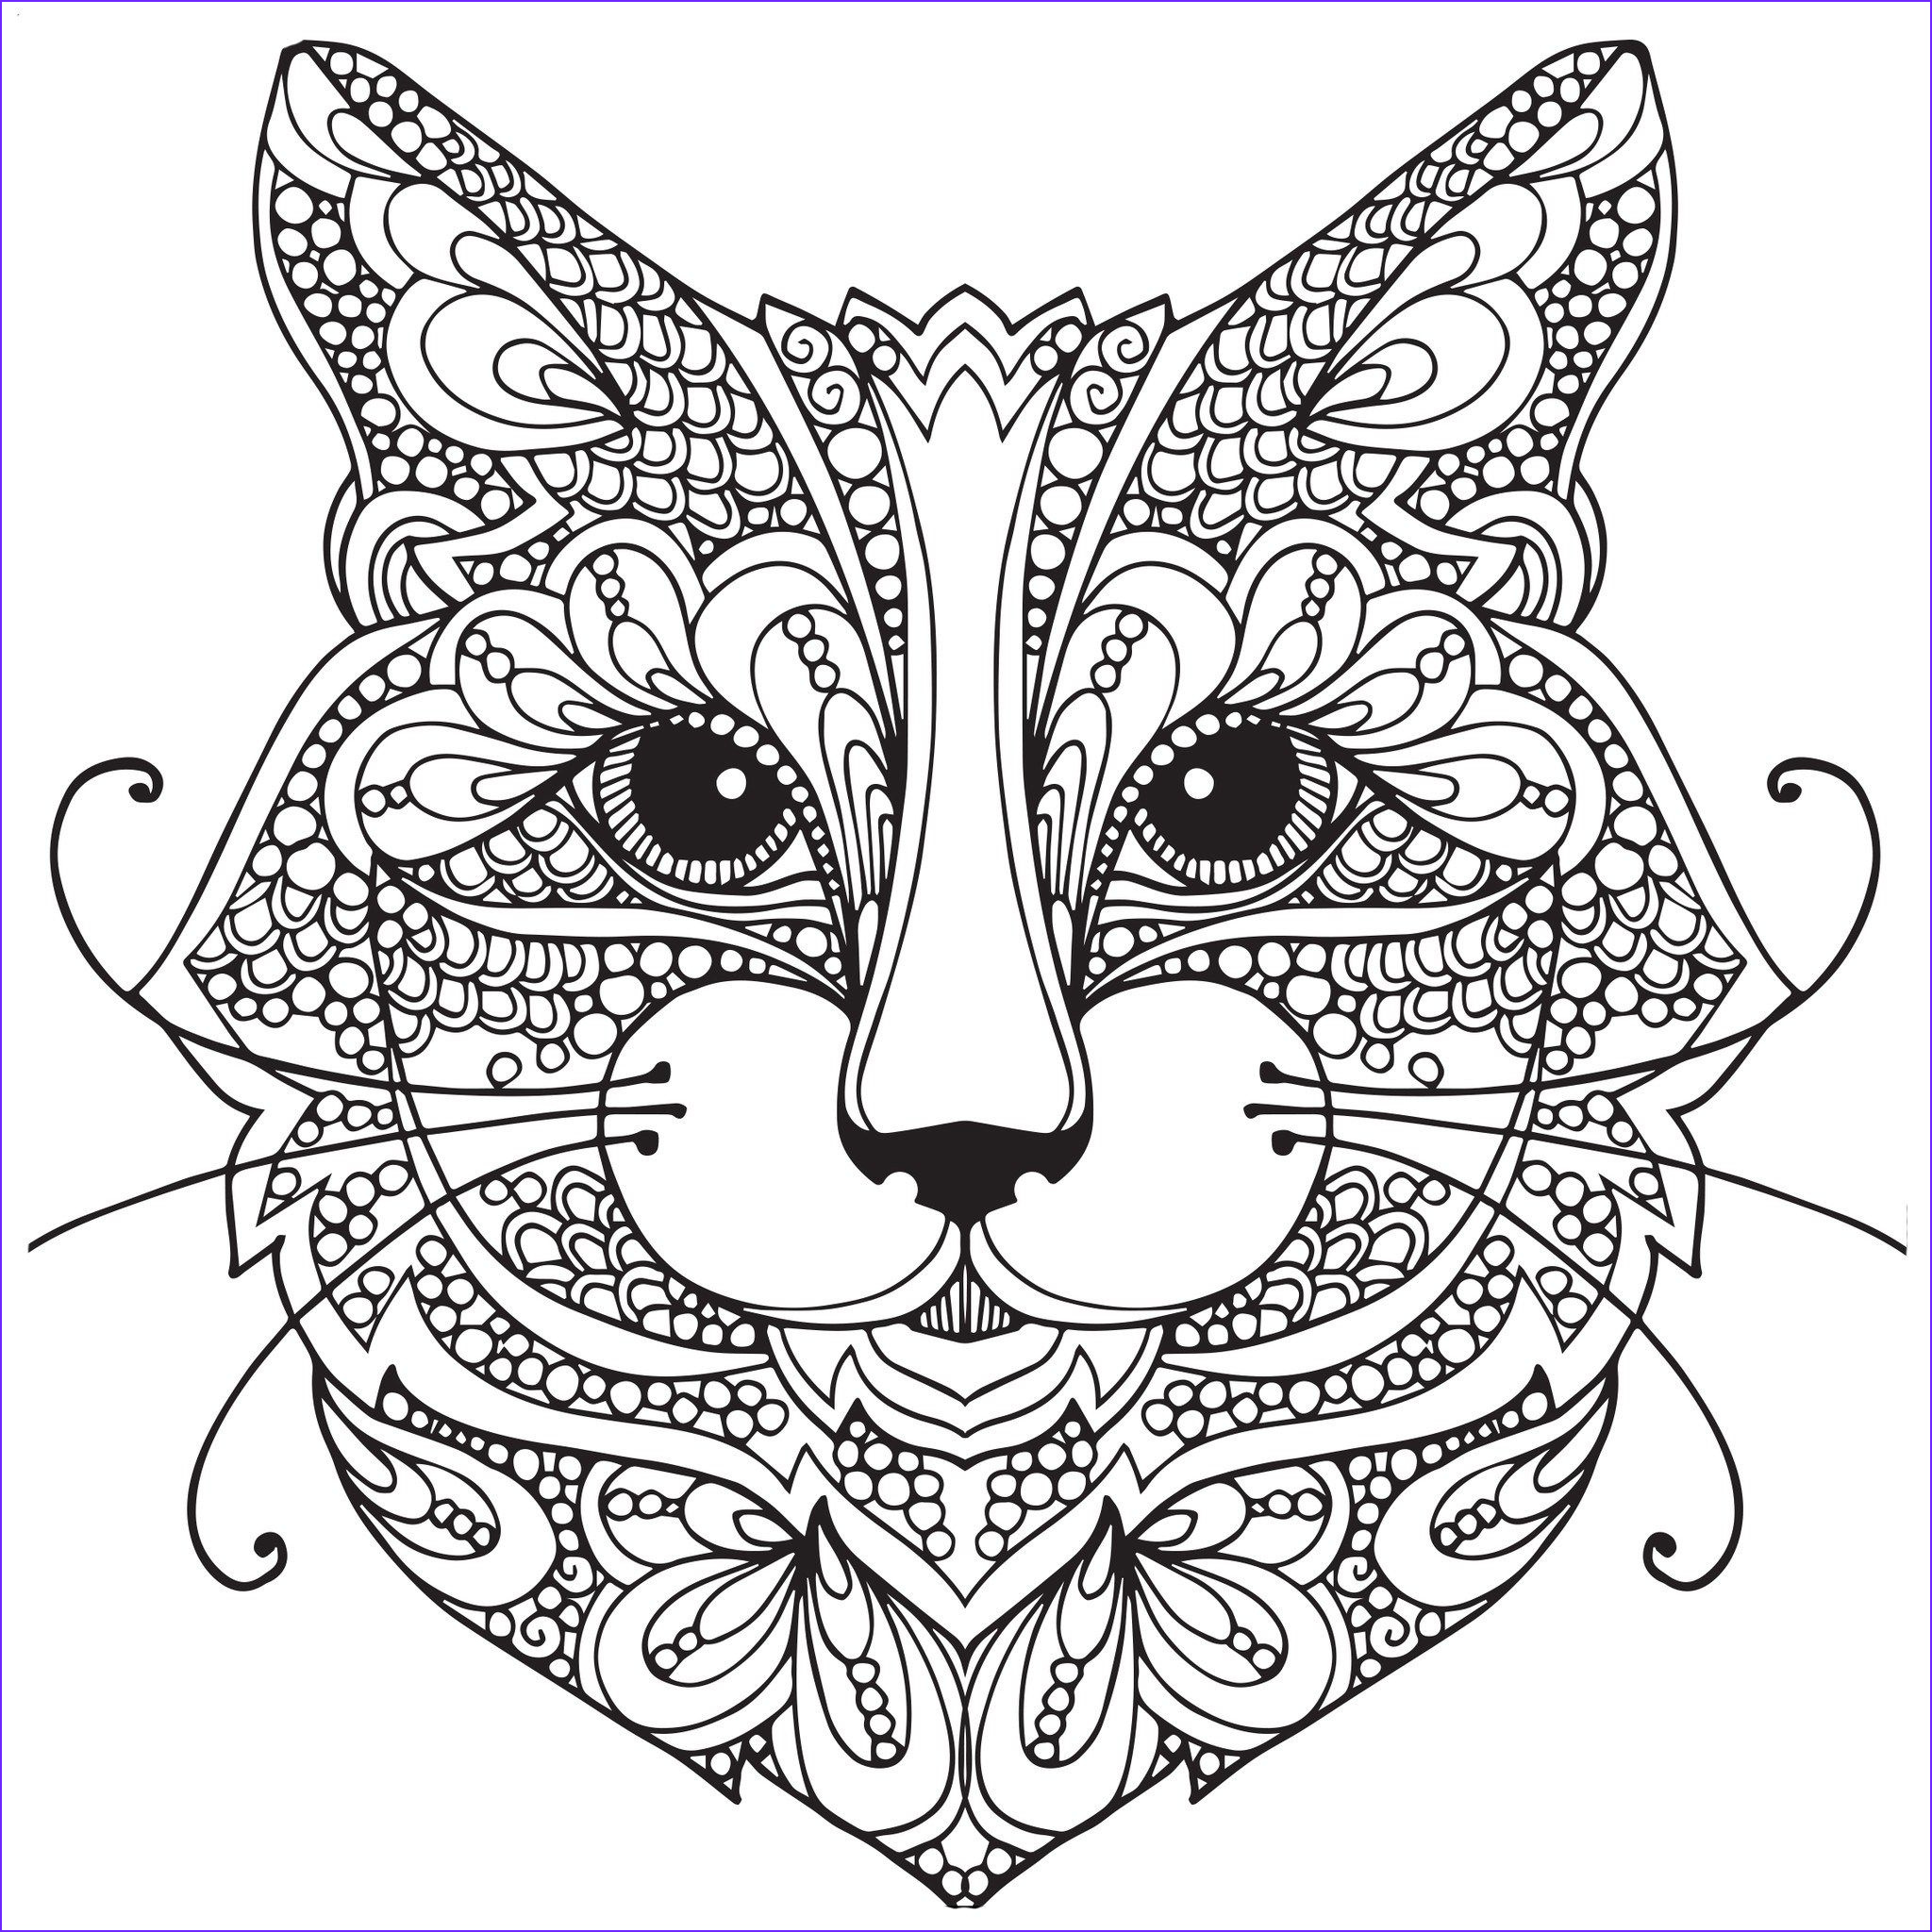 Cat Coloring Books for Adults Best Of Gallery Adult Coloring Pages Cat 1 Coloring Pages